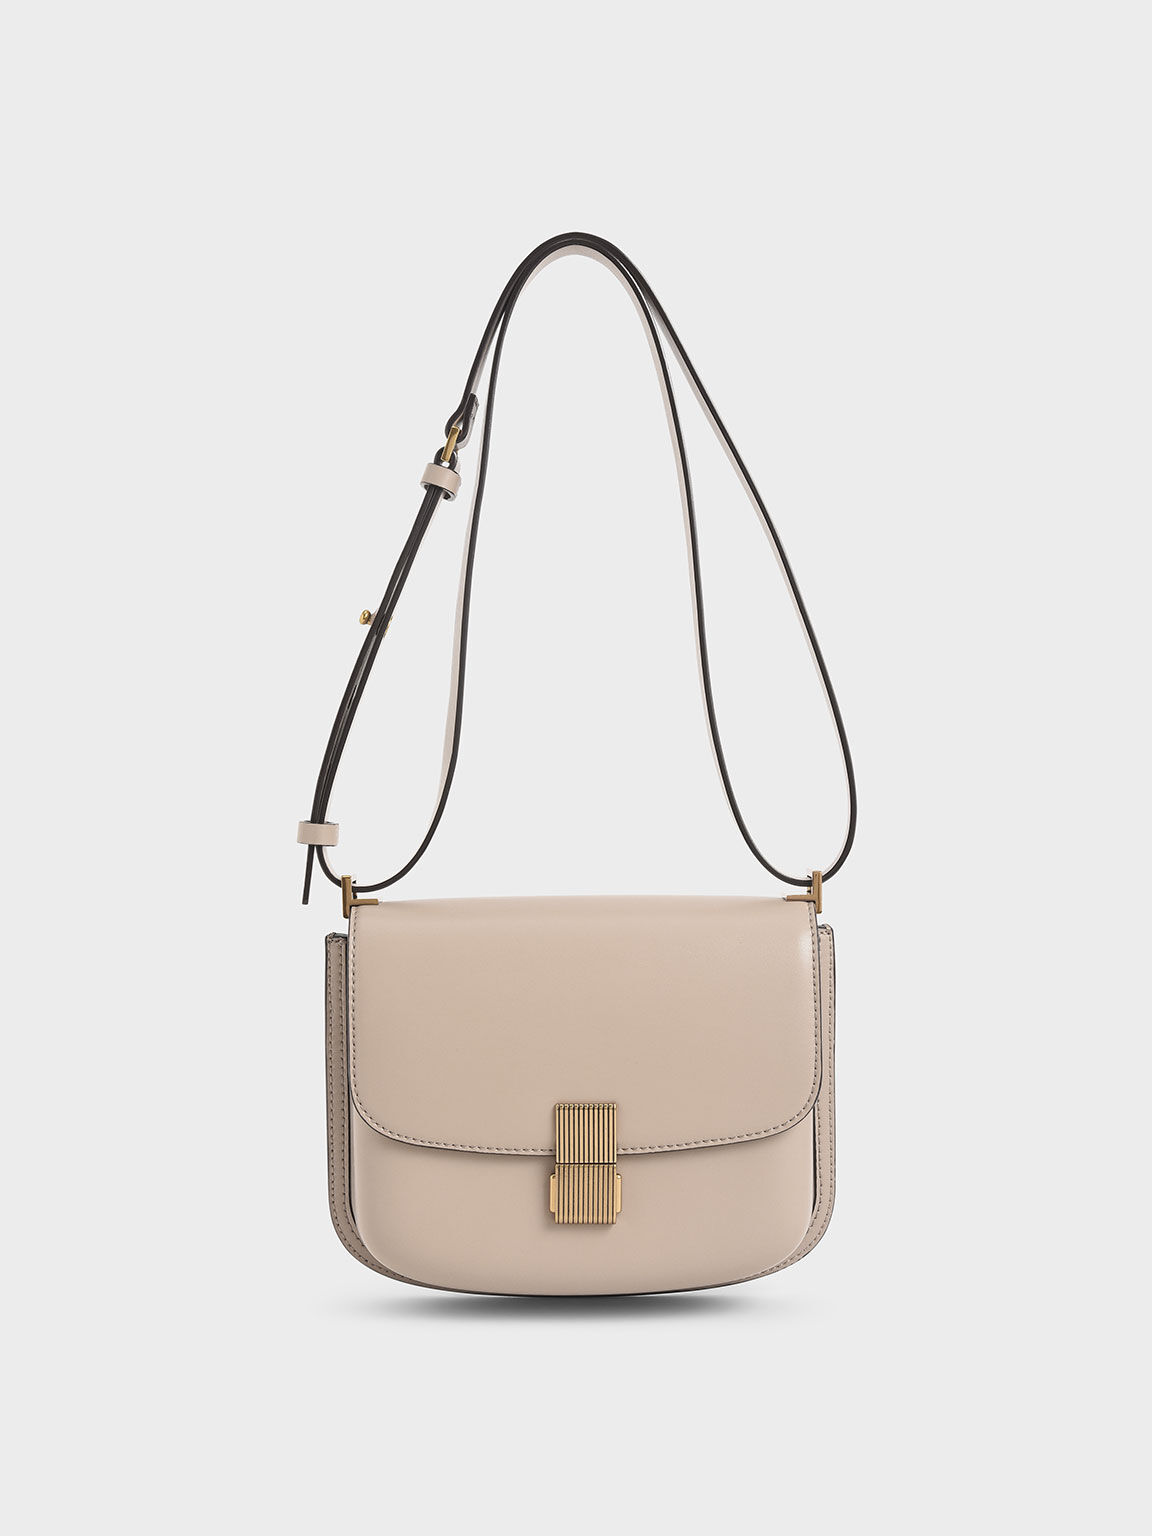 Metallic Push-Lock Shoulder Bag, Sand, hi-res